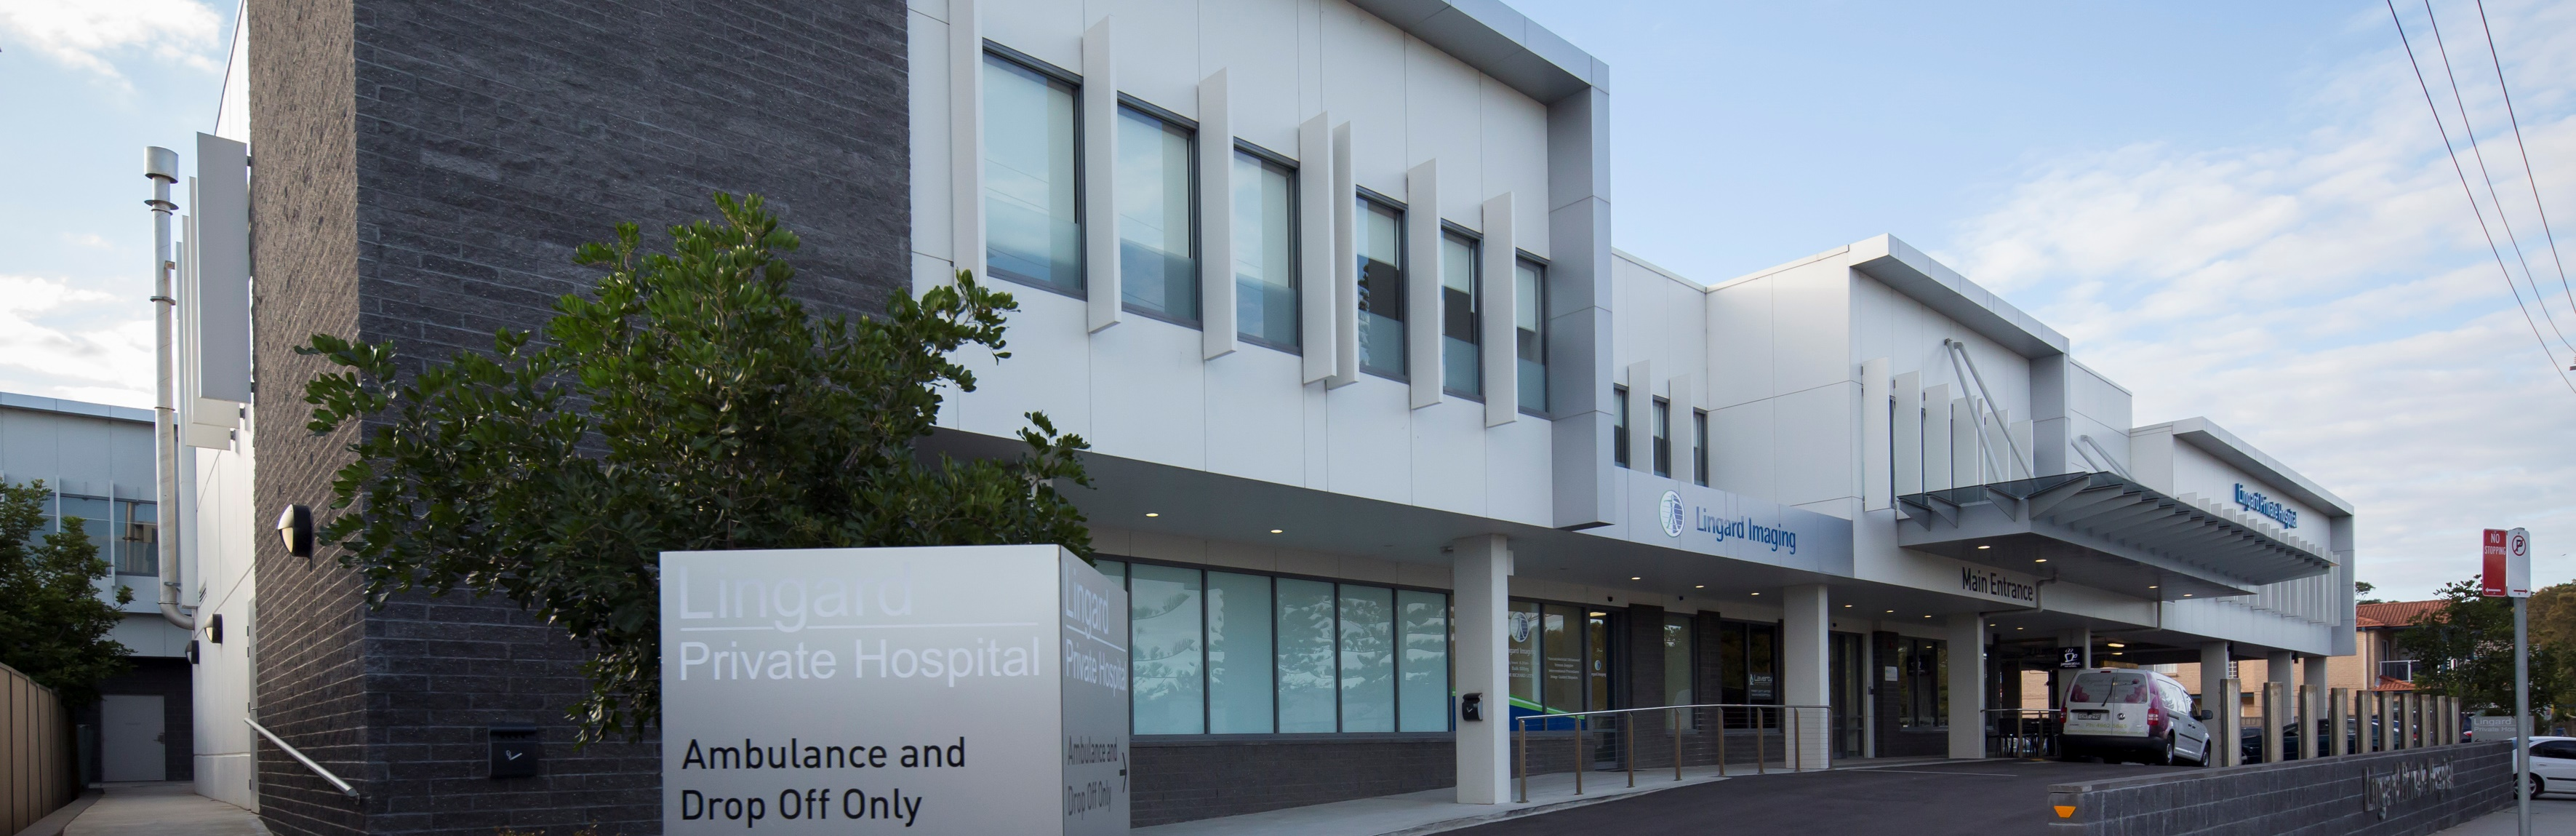 Lingard Private Hospital (Newcastle, Australia)